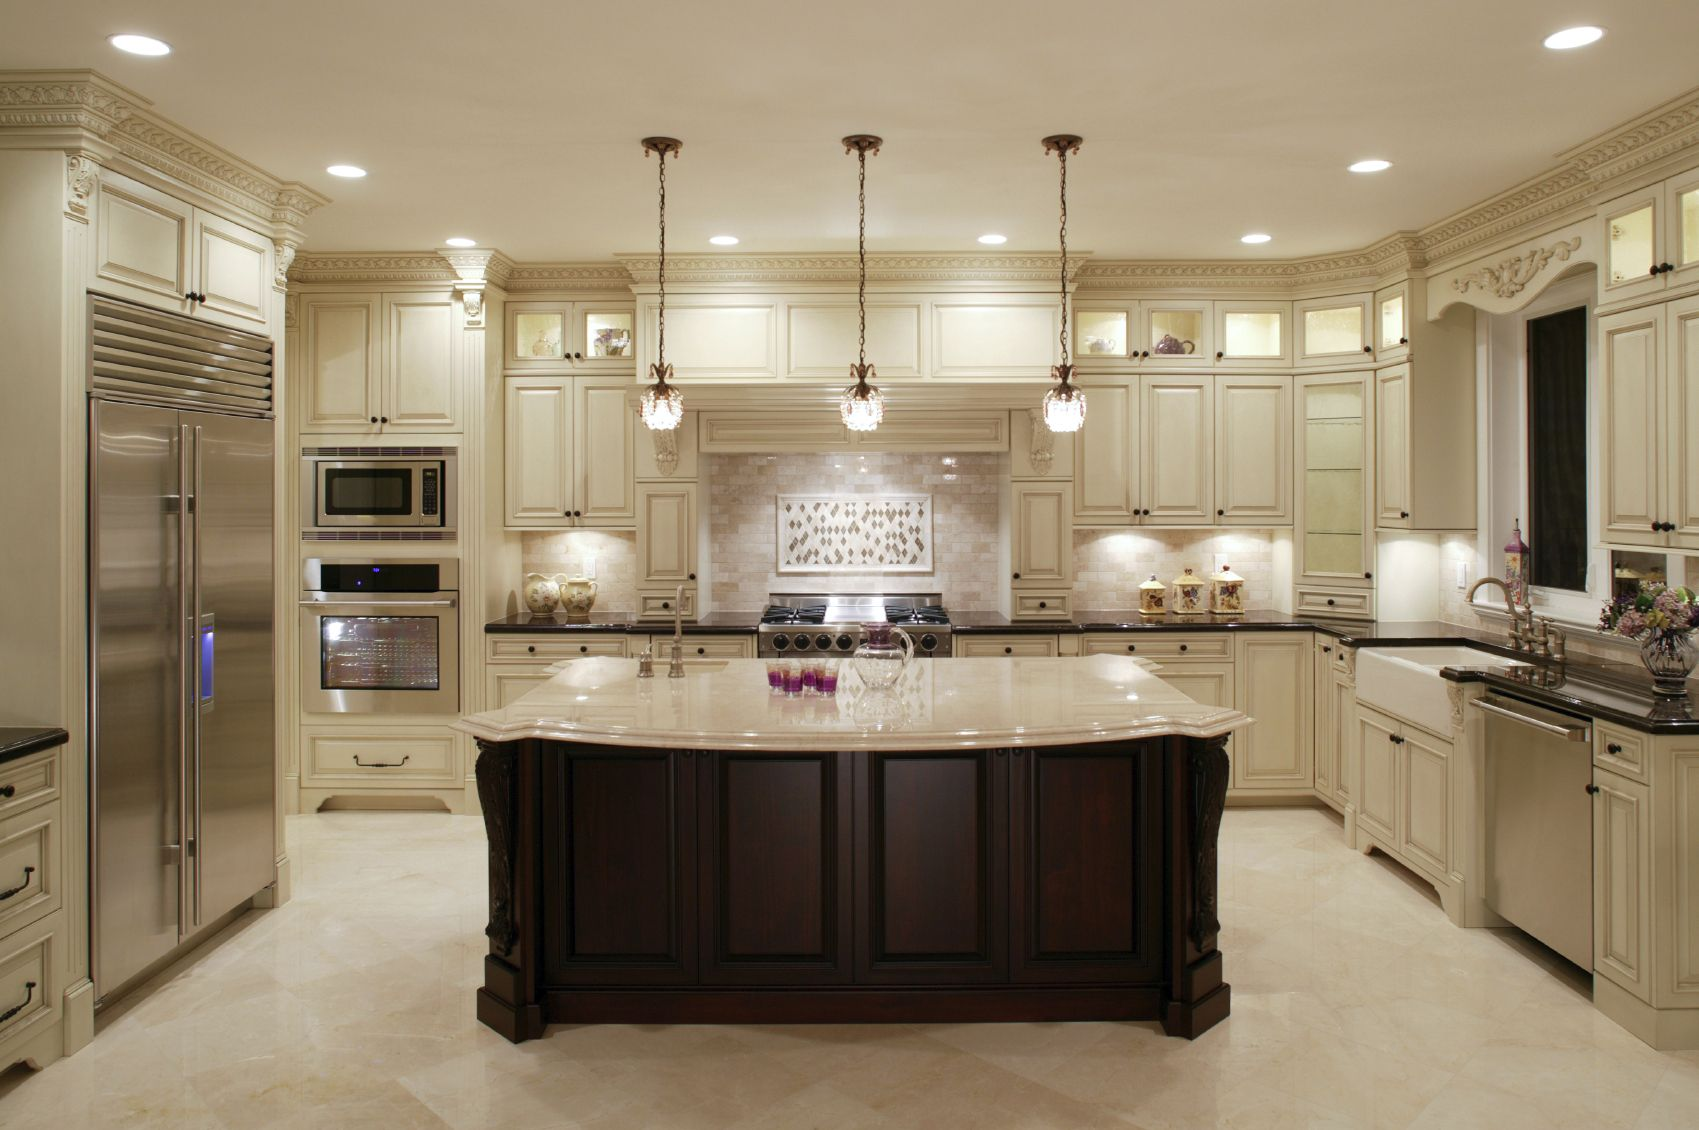 This U Shaped Kitchen Centers Around A Large Dark Wood Island With Classic  Marble Countertop. Surrounding Counters In Black, With White Cabinetry, ...